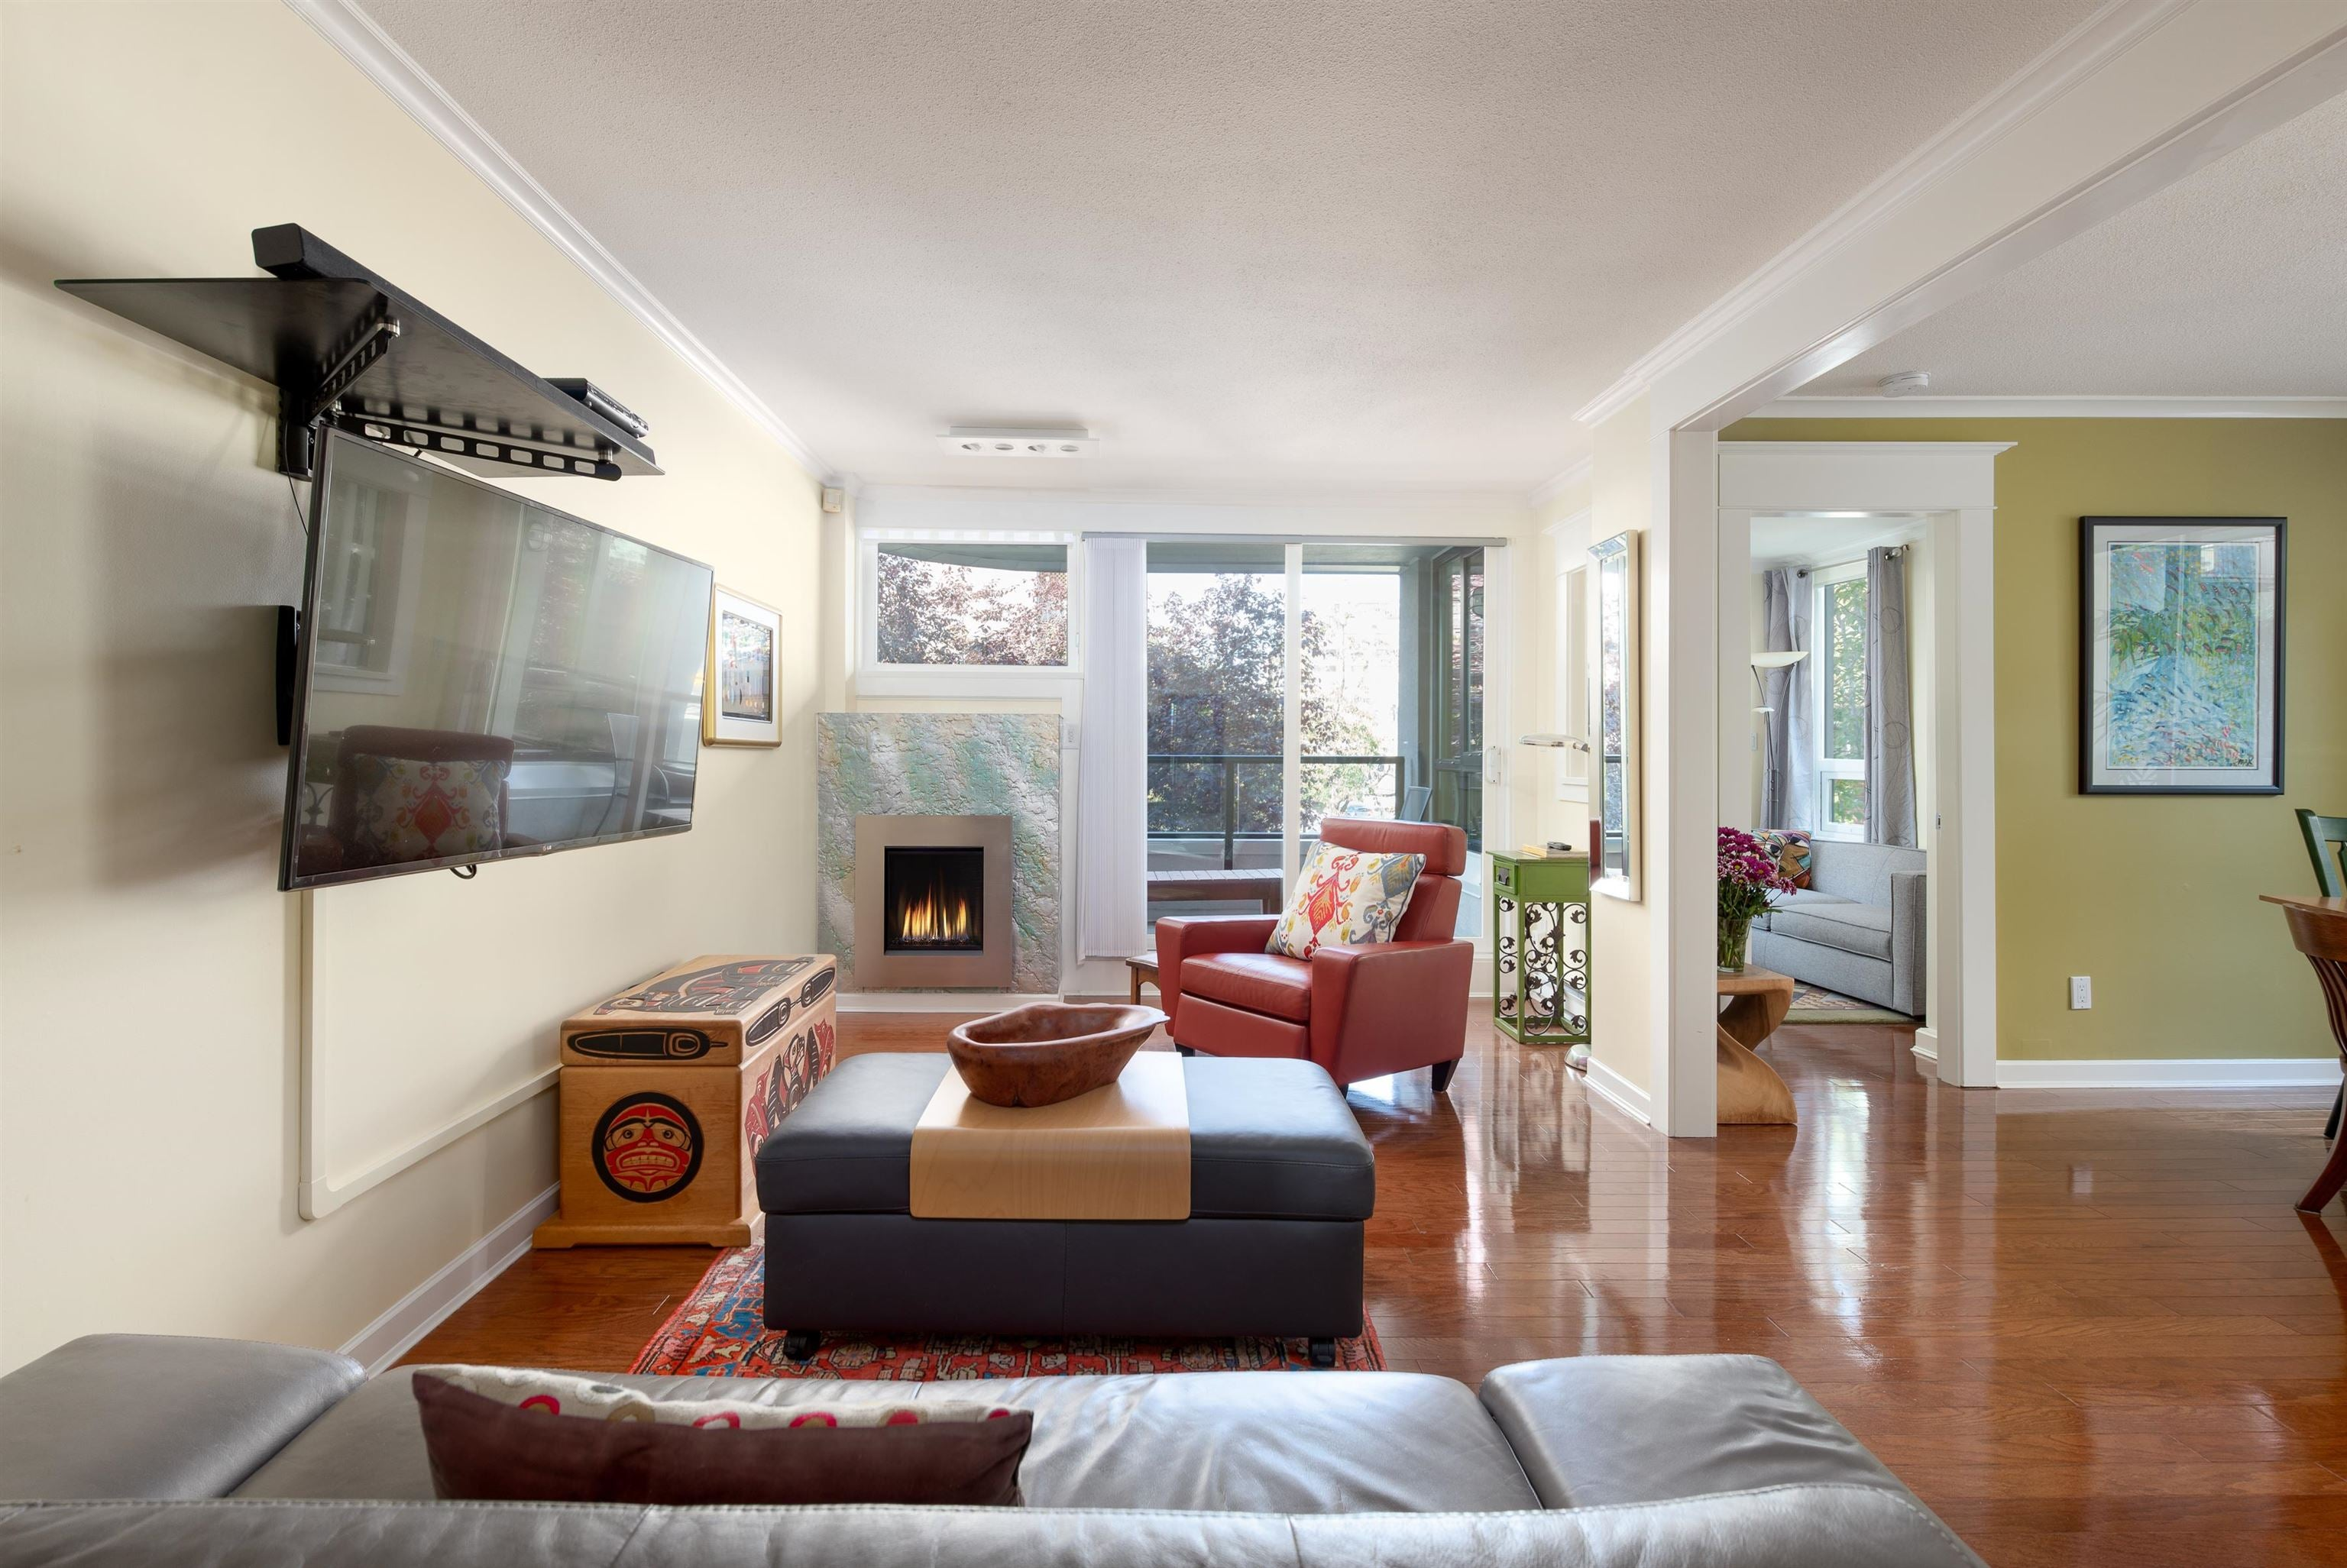 401 1330 JERVIS STREET - West End VW Apartment/Condo for sale, 2 Bedrooms (R2622608) - #1